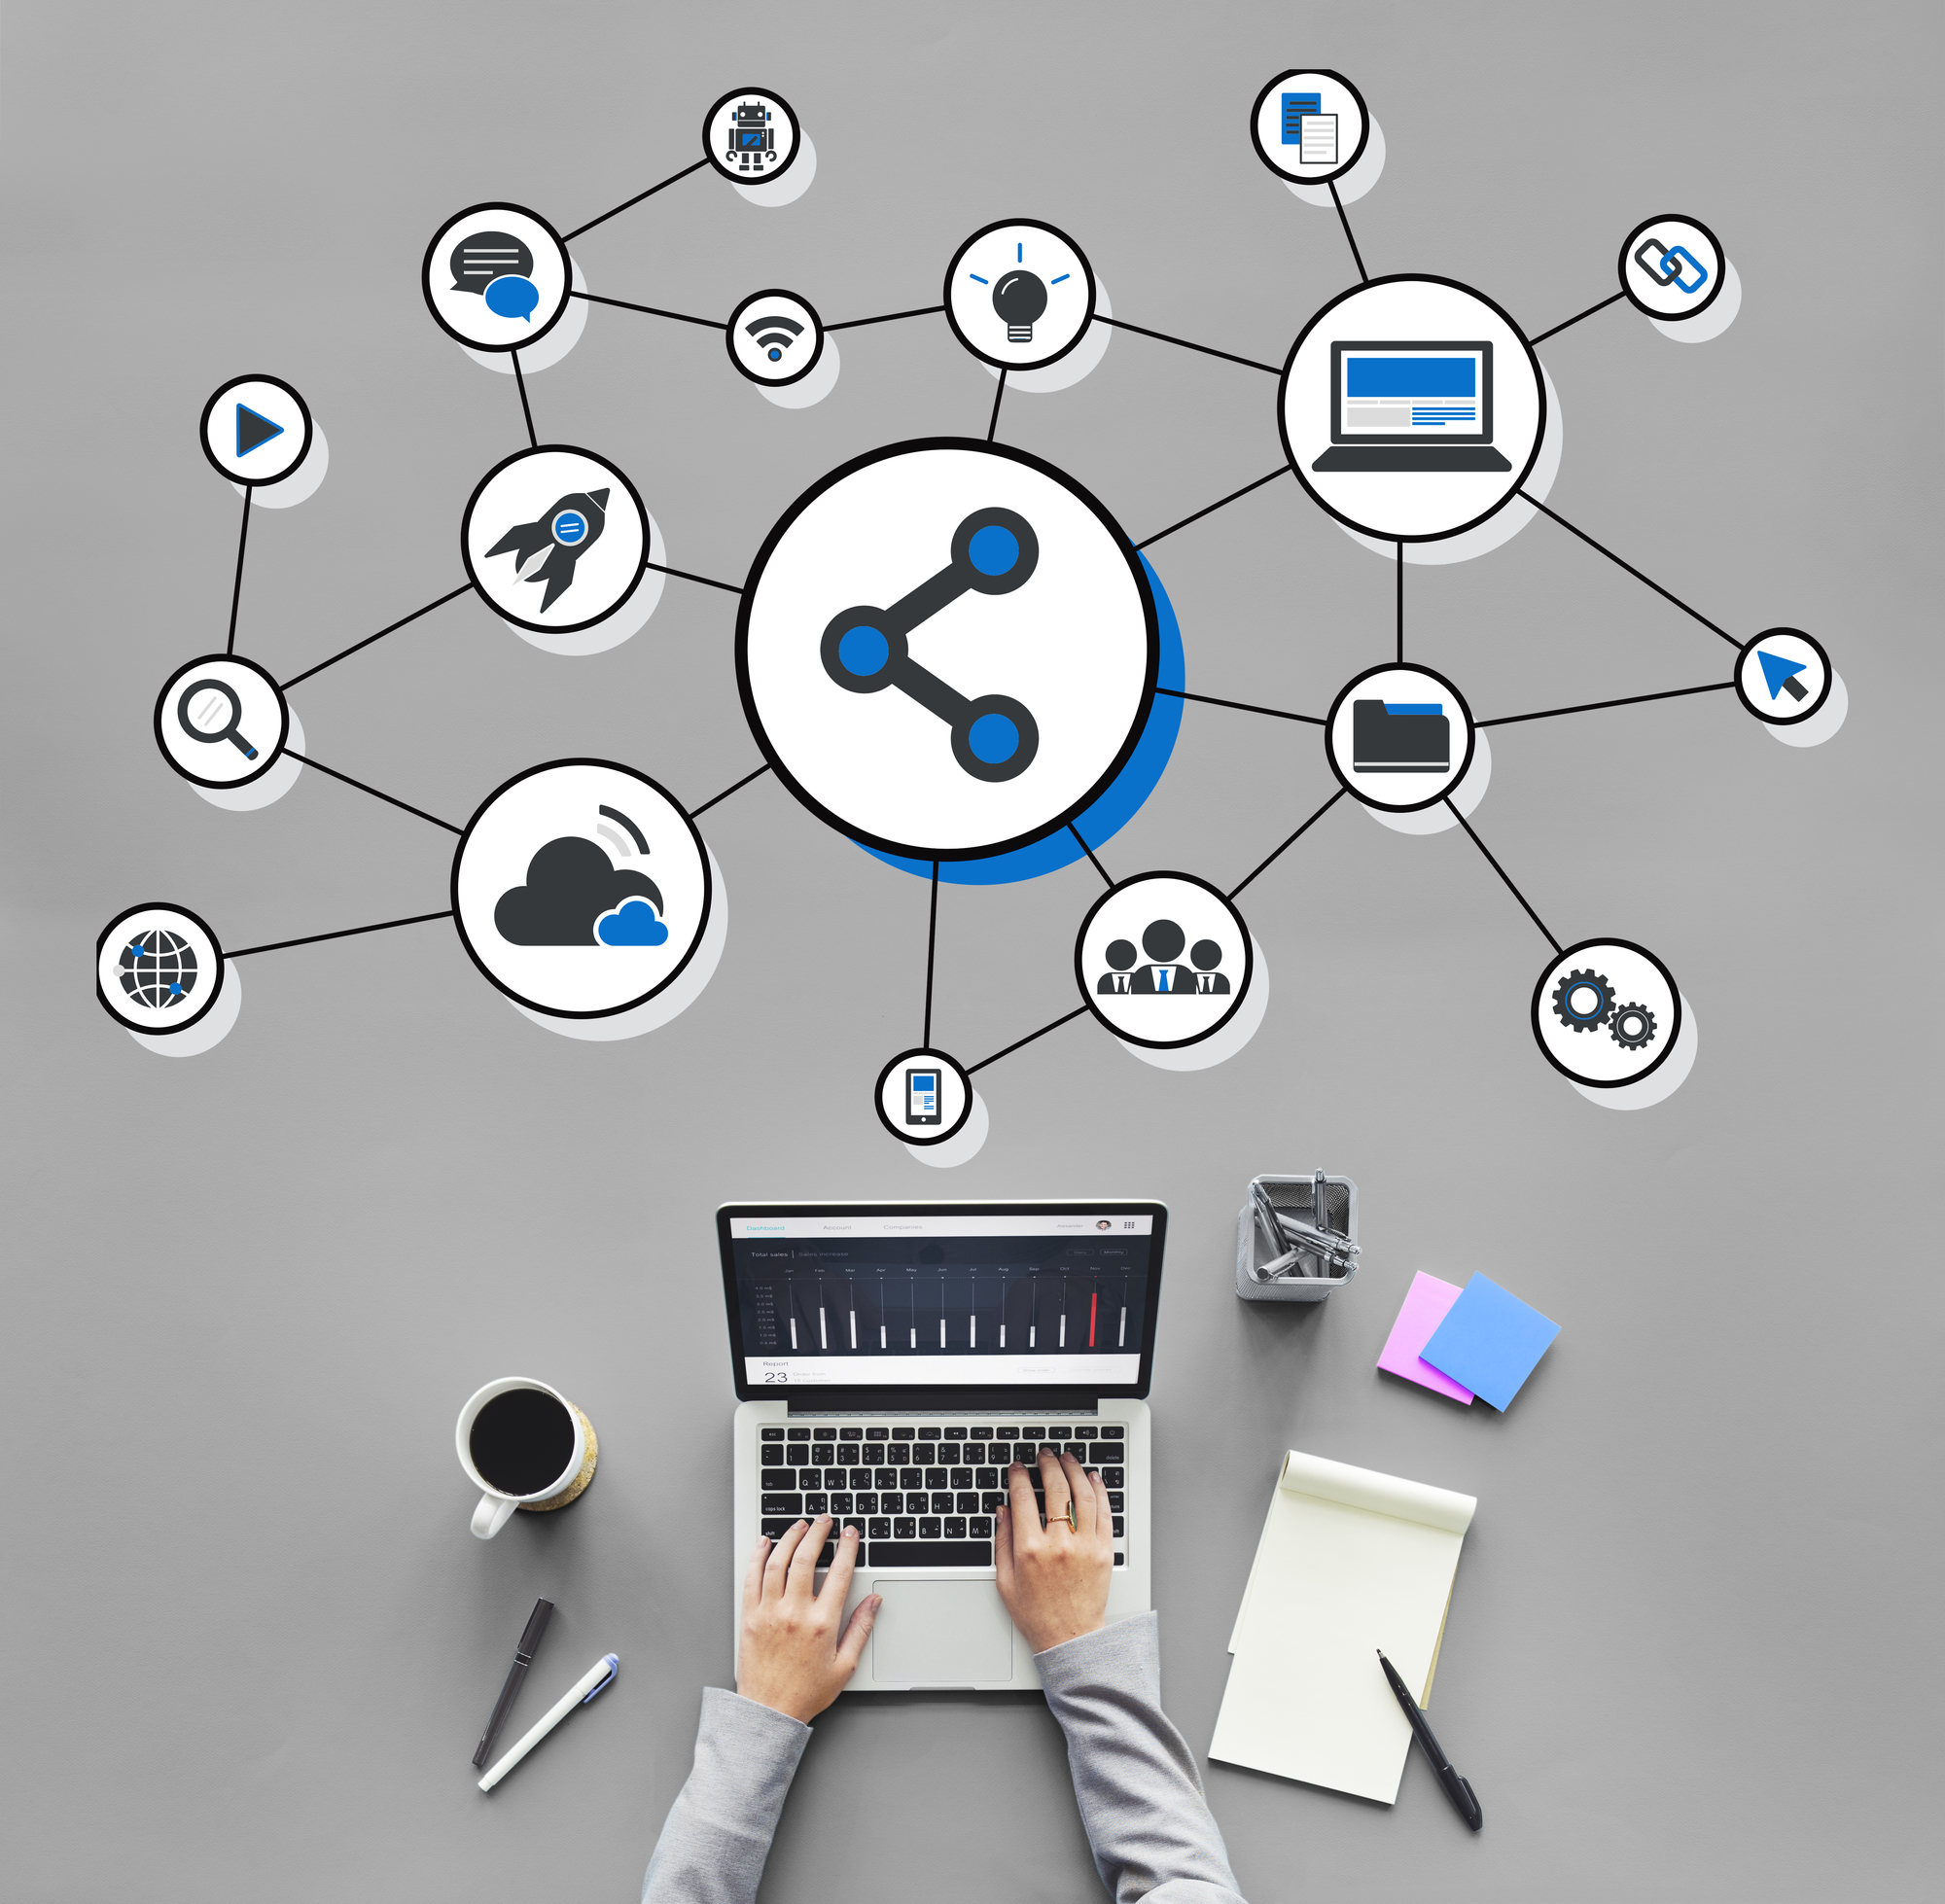 6 Must-haves For Your Marketing Automation Platform